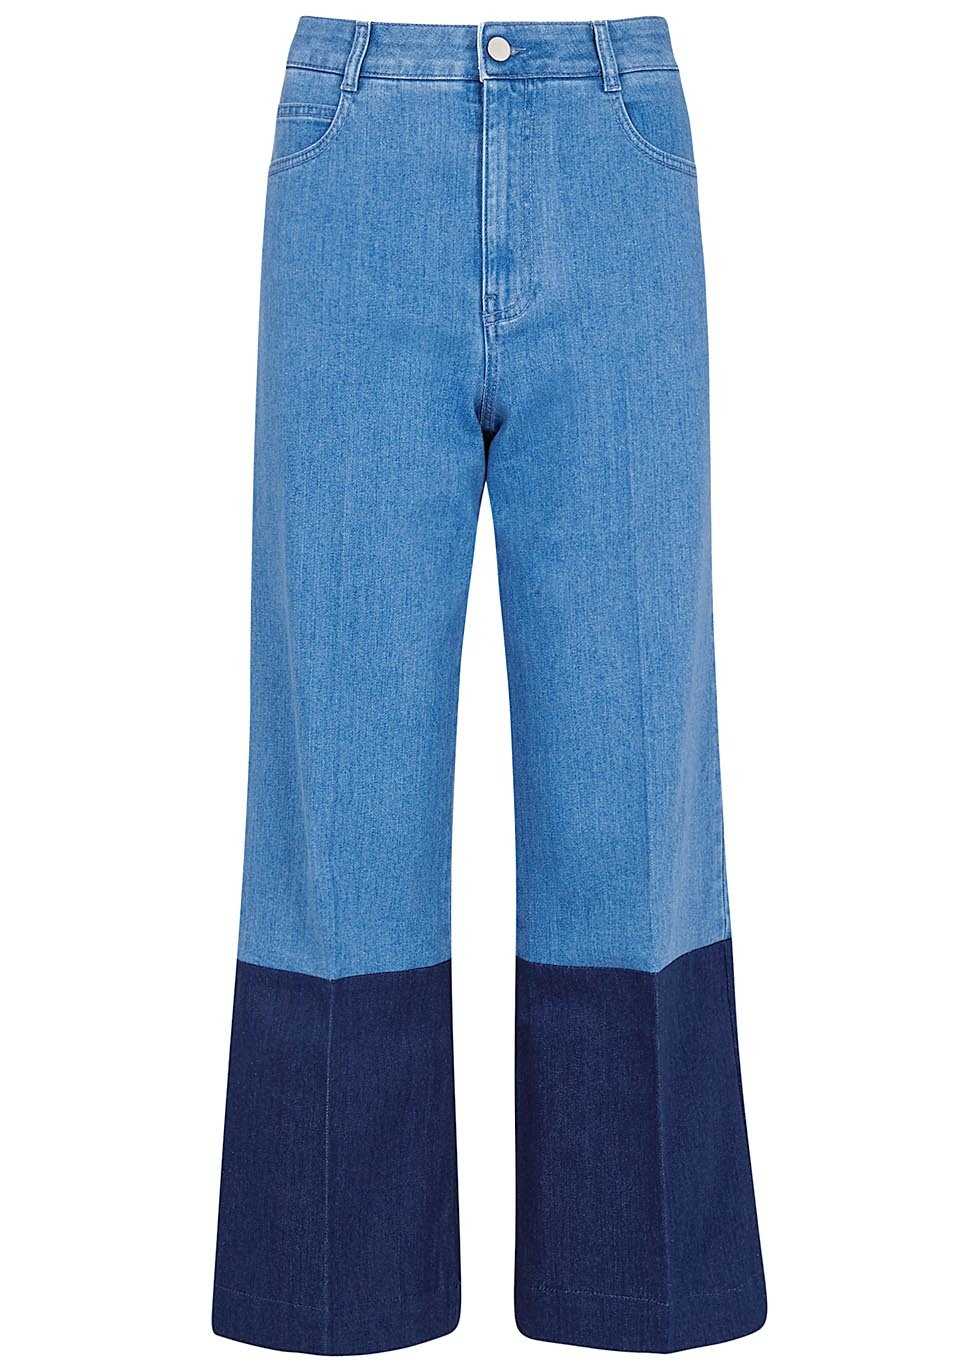 Two Tone Cropped Jeans - waist: high rise; pocket detail: traditional 5 pocket; style: wide leg; secondary colour: navy; predominant colour: denim; occasions: casual; length: ankle length; fibres: cotton - stretch; texture group: denim; pattern type: fabric; pattern: colourblock; pattern size: standard (bottom); season: a/w 2016; wardrobe: highlight